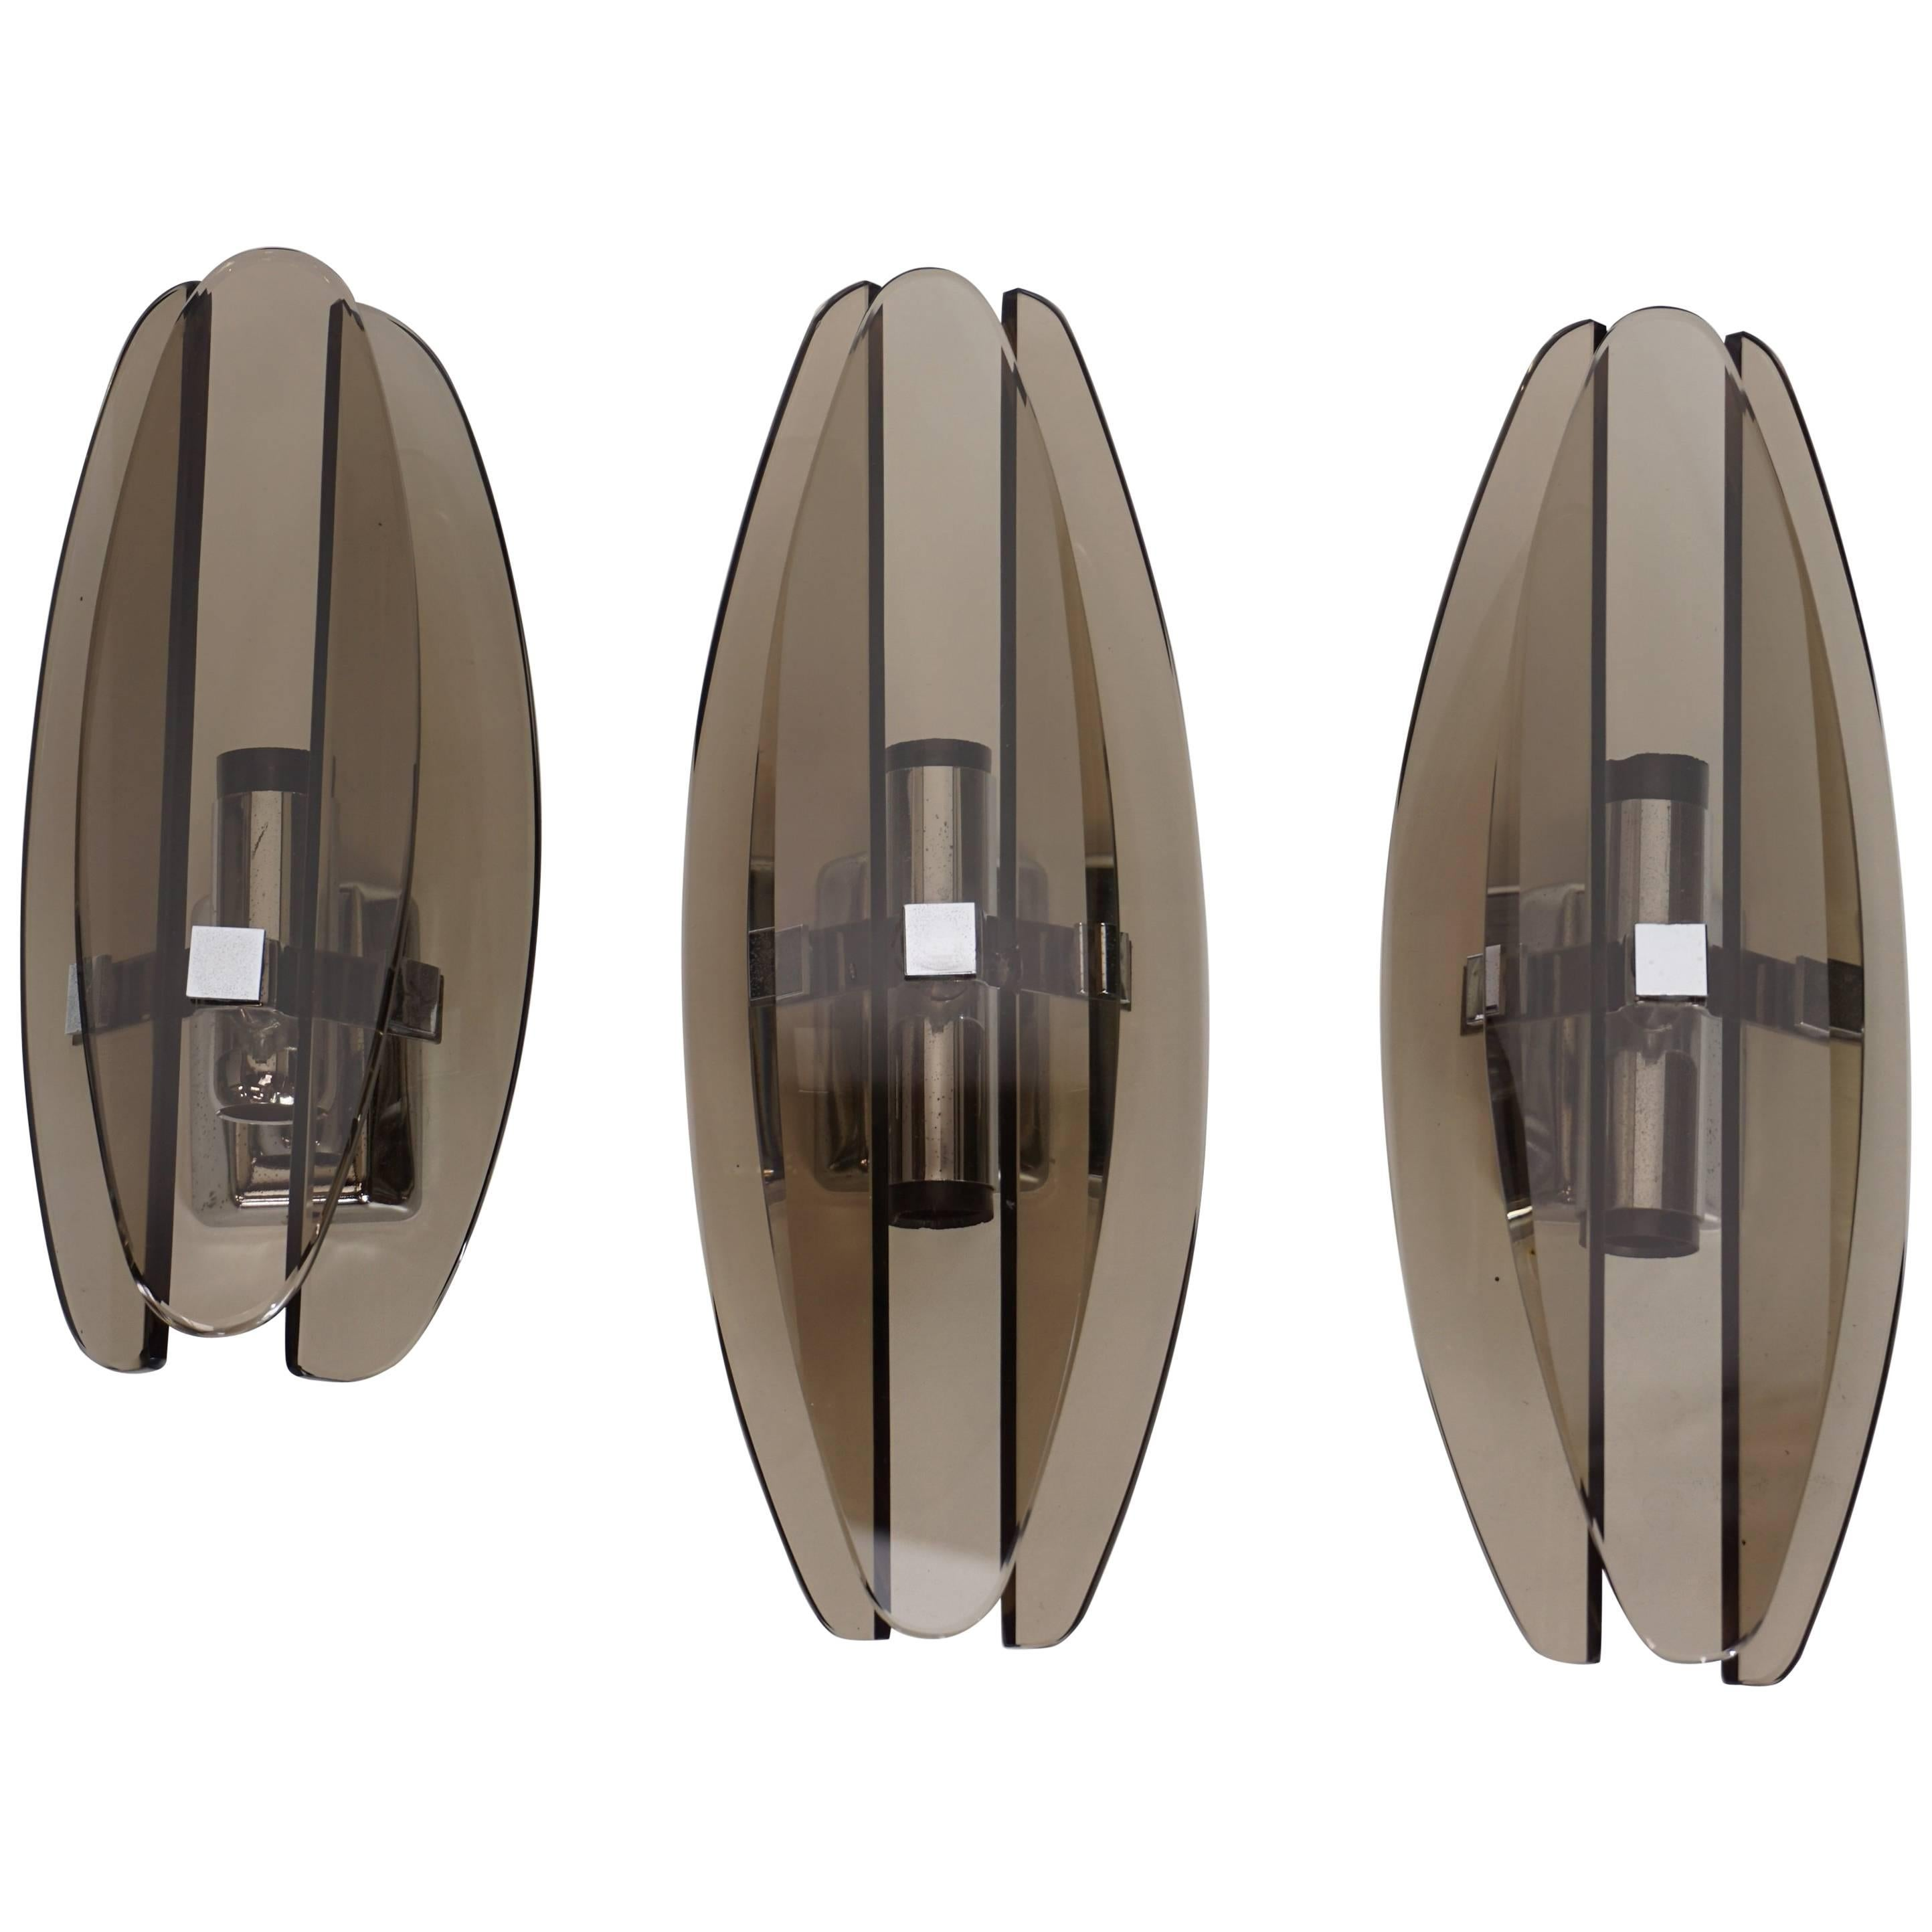 Set of Three Italian Design Chrome and Smoked Glass Sconces by Veca